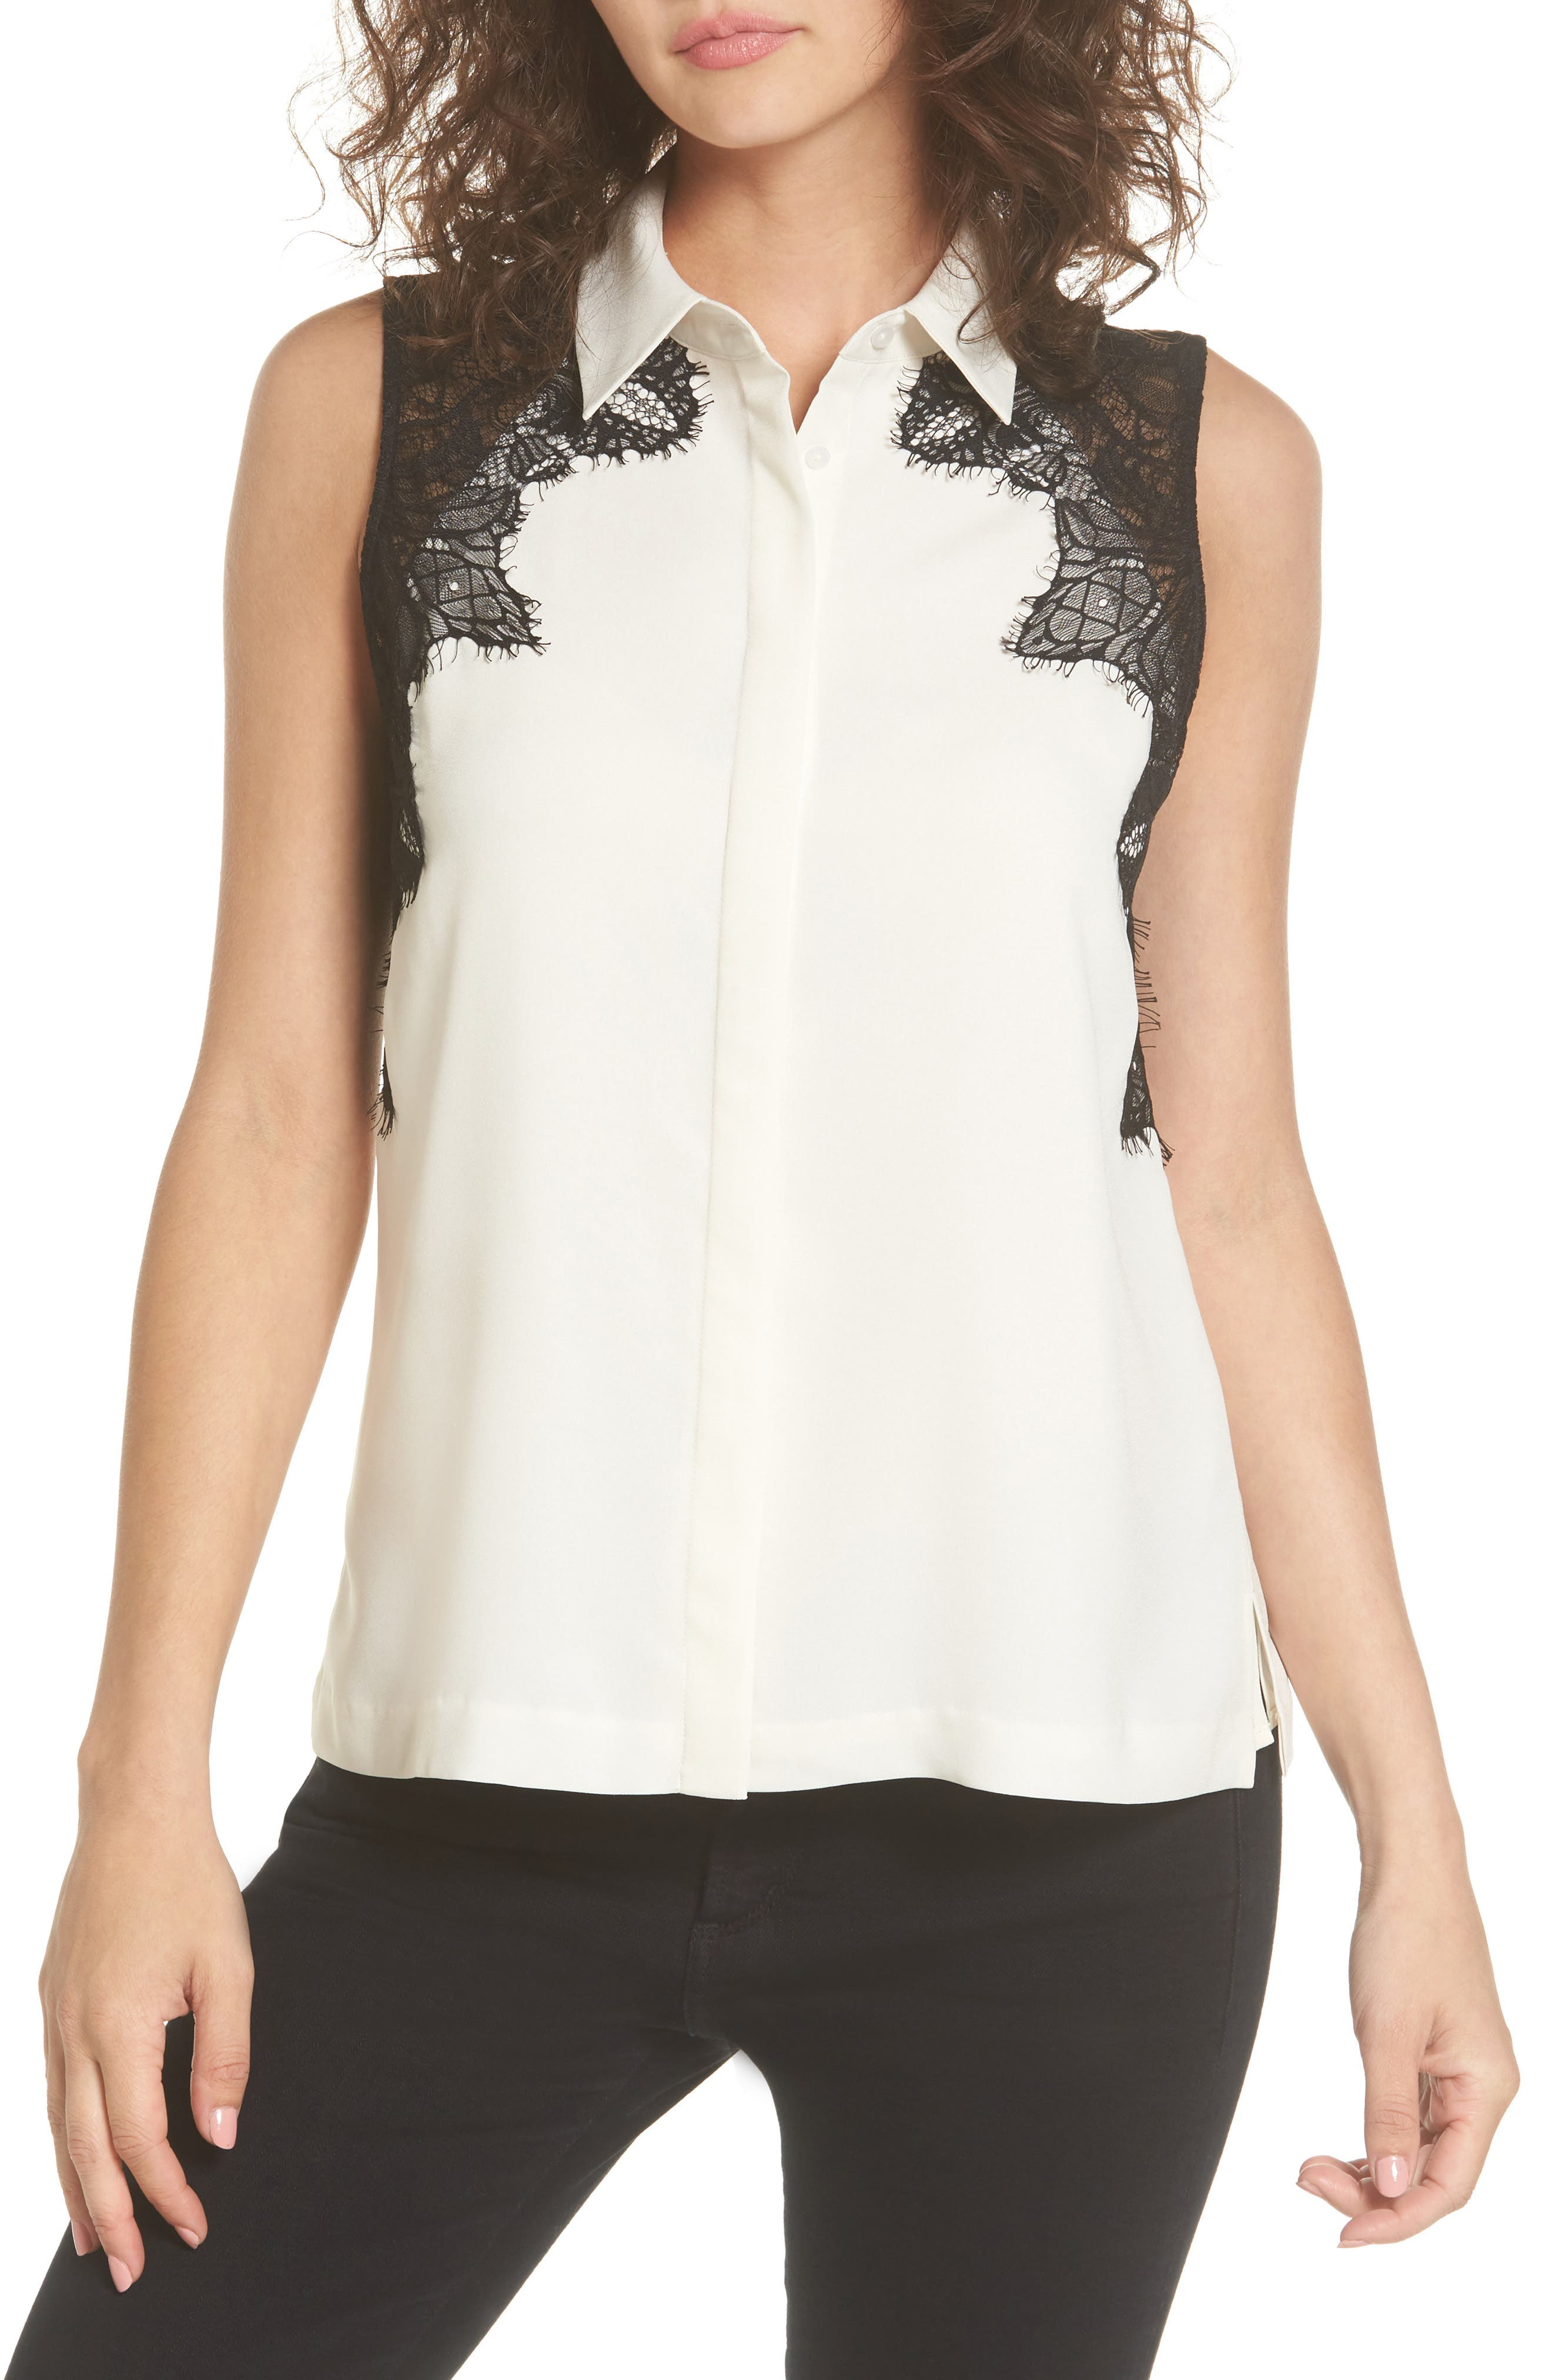 Alternate Image 1 Selected - cooper & ella Vera Lace Sleeveless Blouse